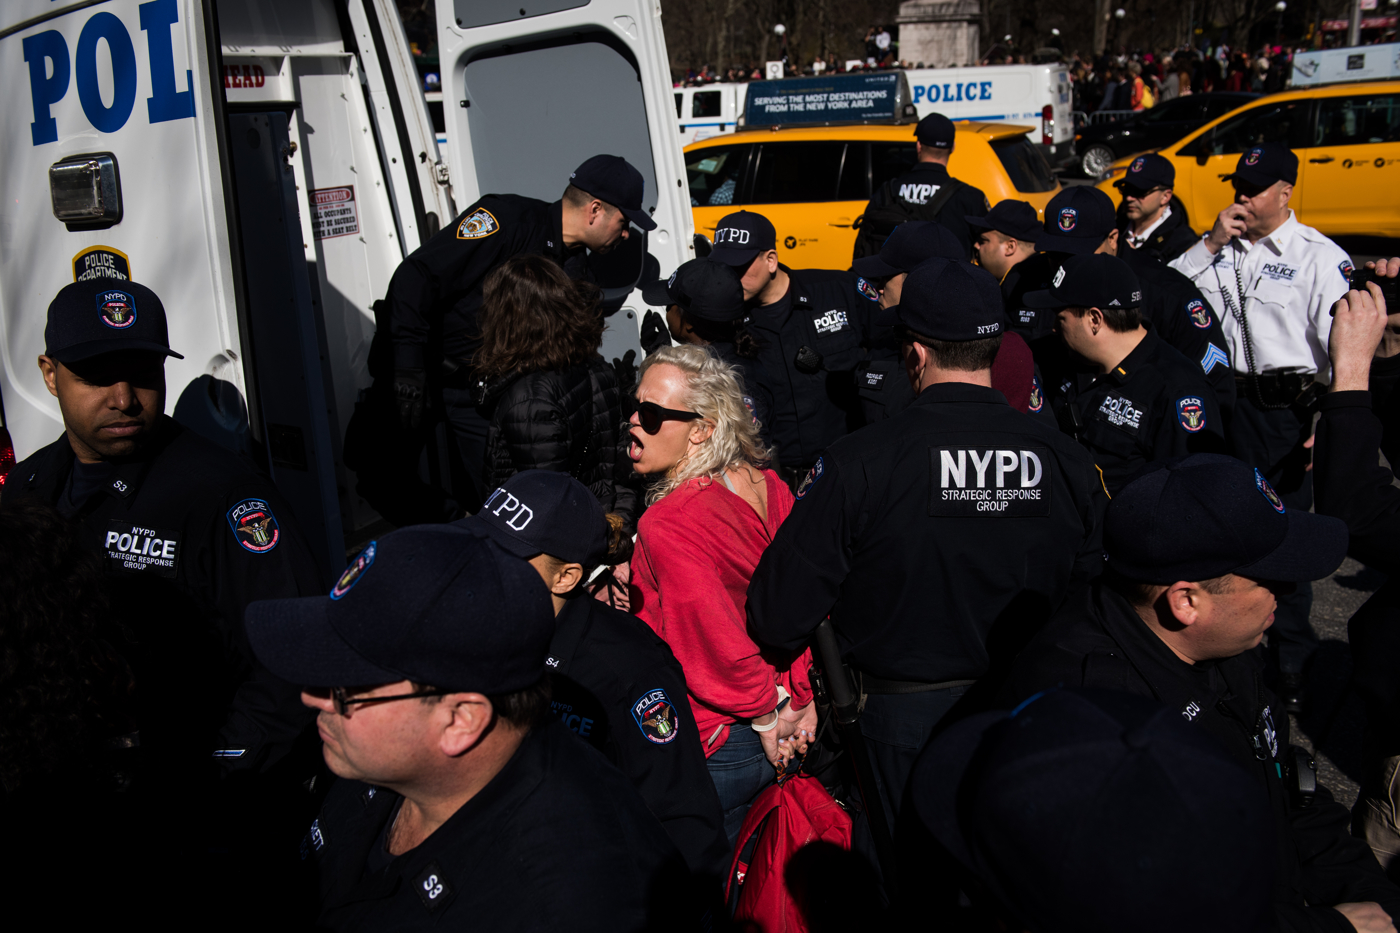 Demonstrators are loaded into a police van after being arrested for blocking traffic in Columbus Circle during an International Women's Day rally and march in New York, NY on March 8, 2017. CREDIT: Mark Kauzlarich for CNN